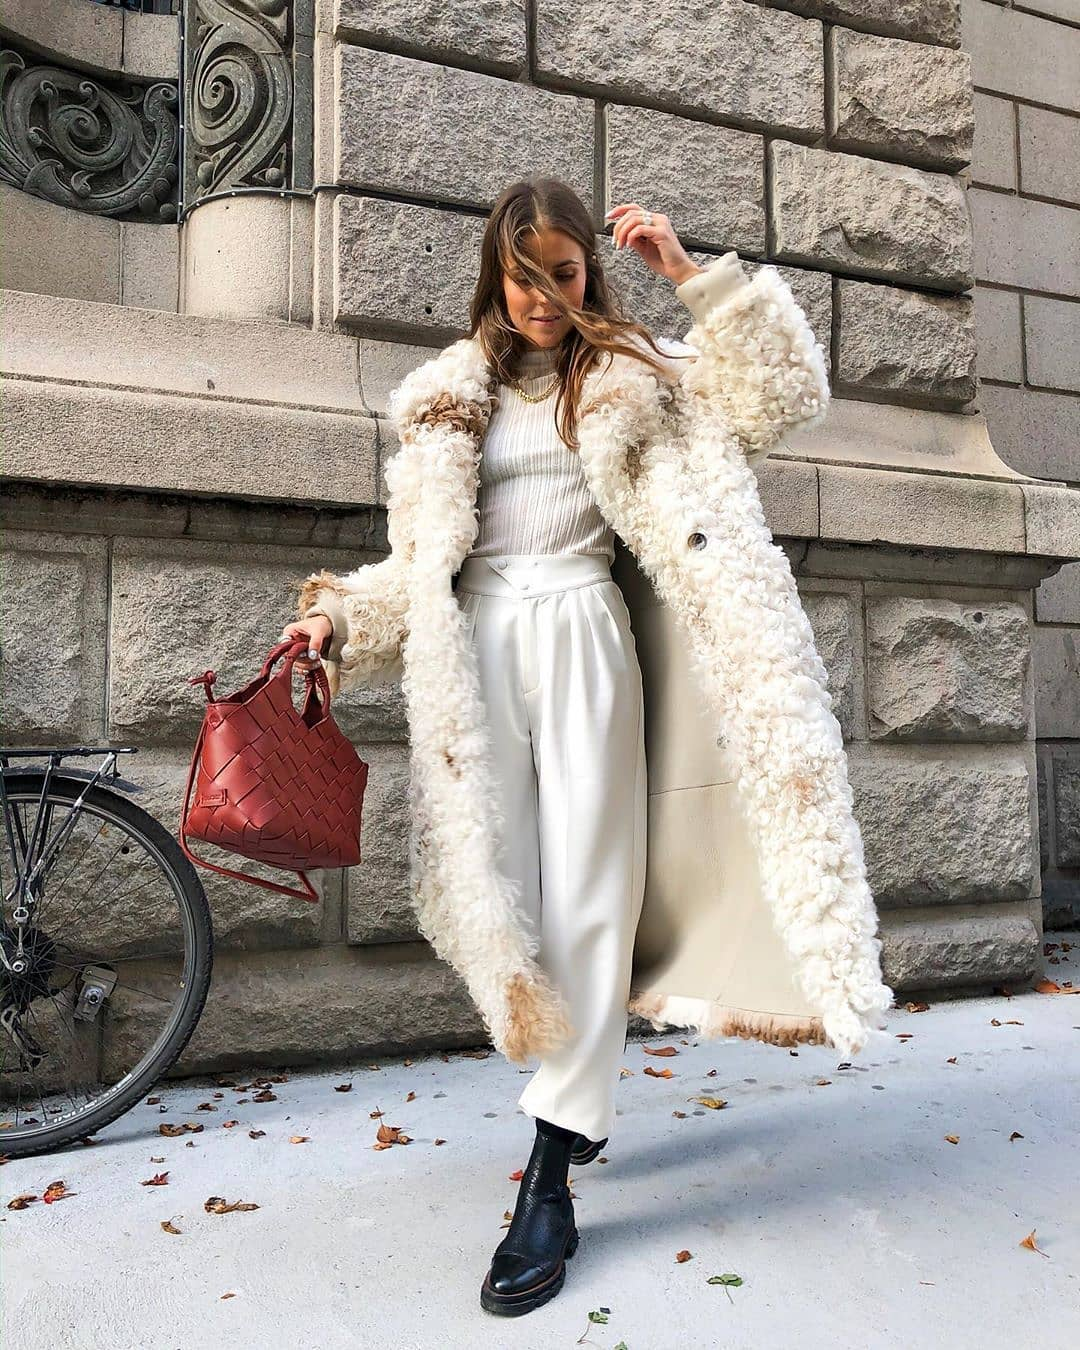 100+ Beautiful Winter Outfits Standout for Current Fashion Trends images 1